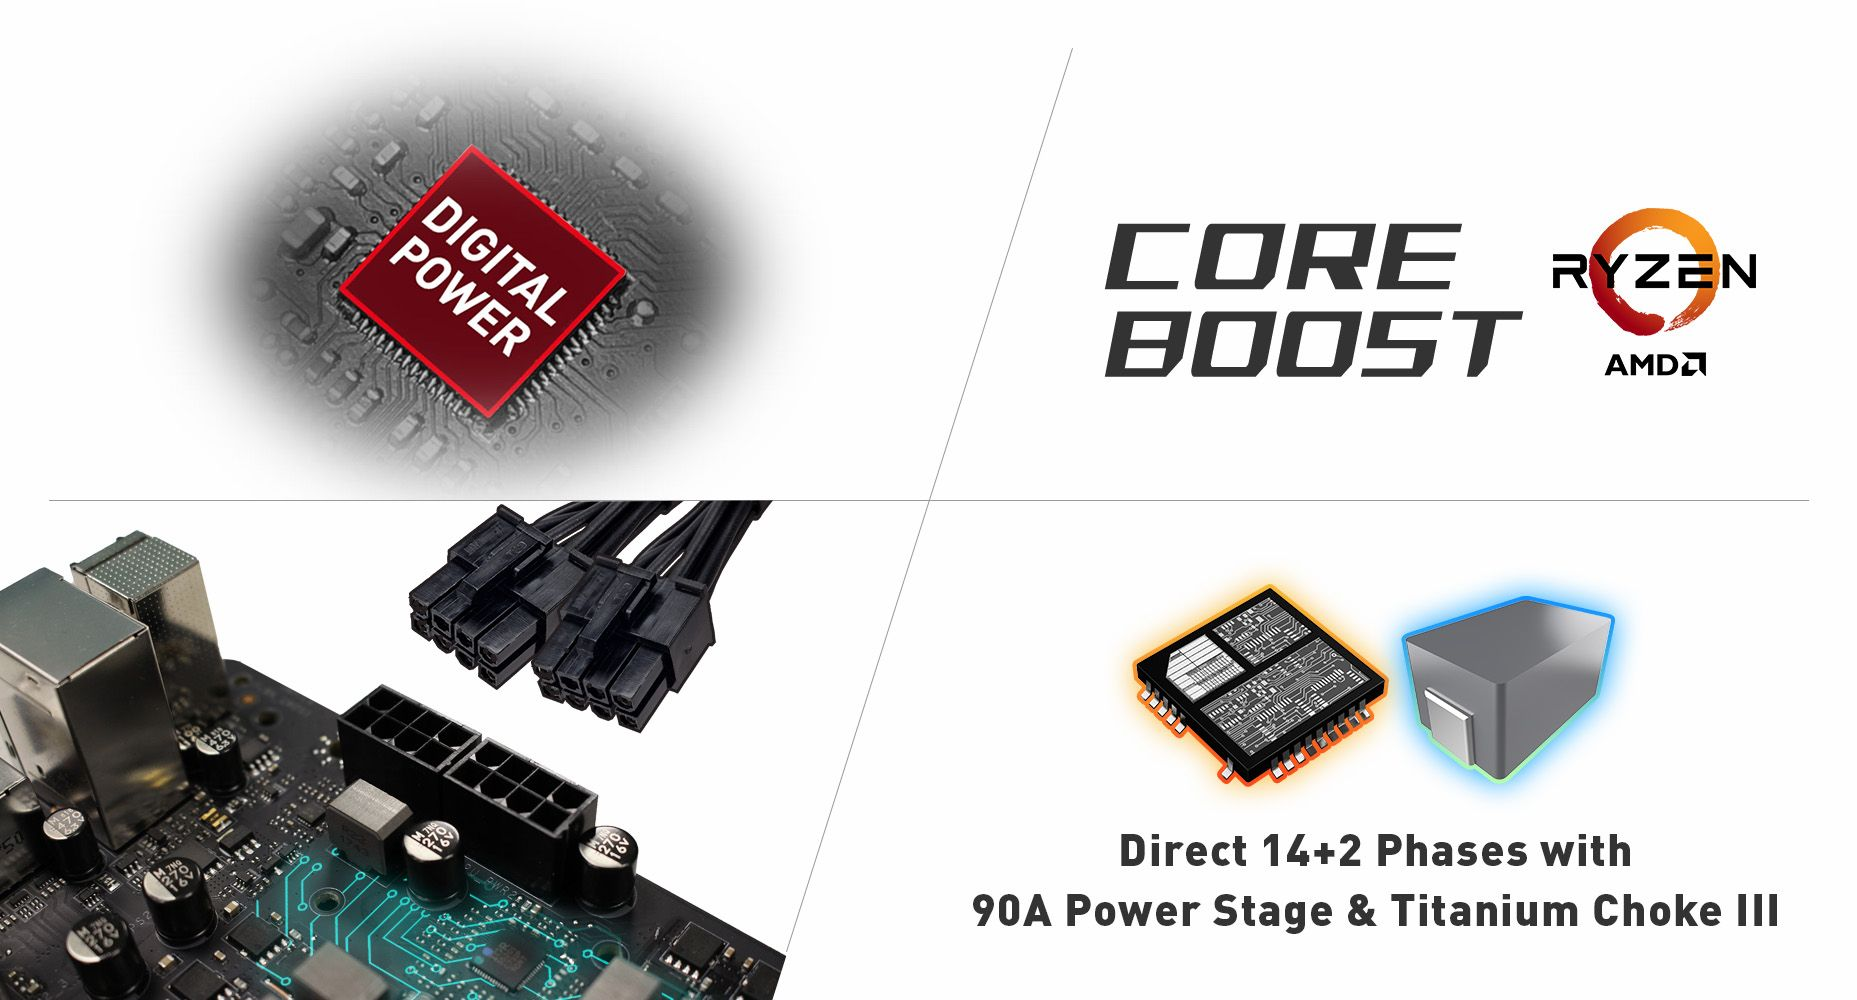 MSI MEG B550 UNIFY Direct 14+2 Phases with 90A Power Stage